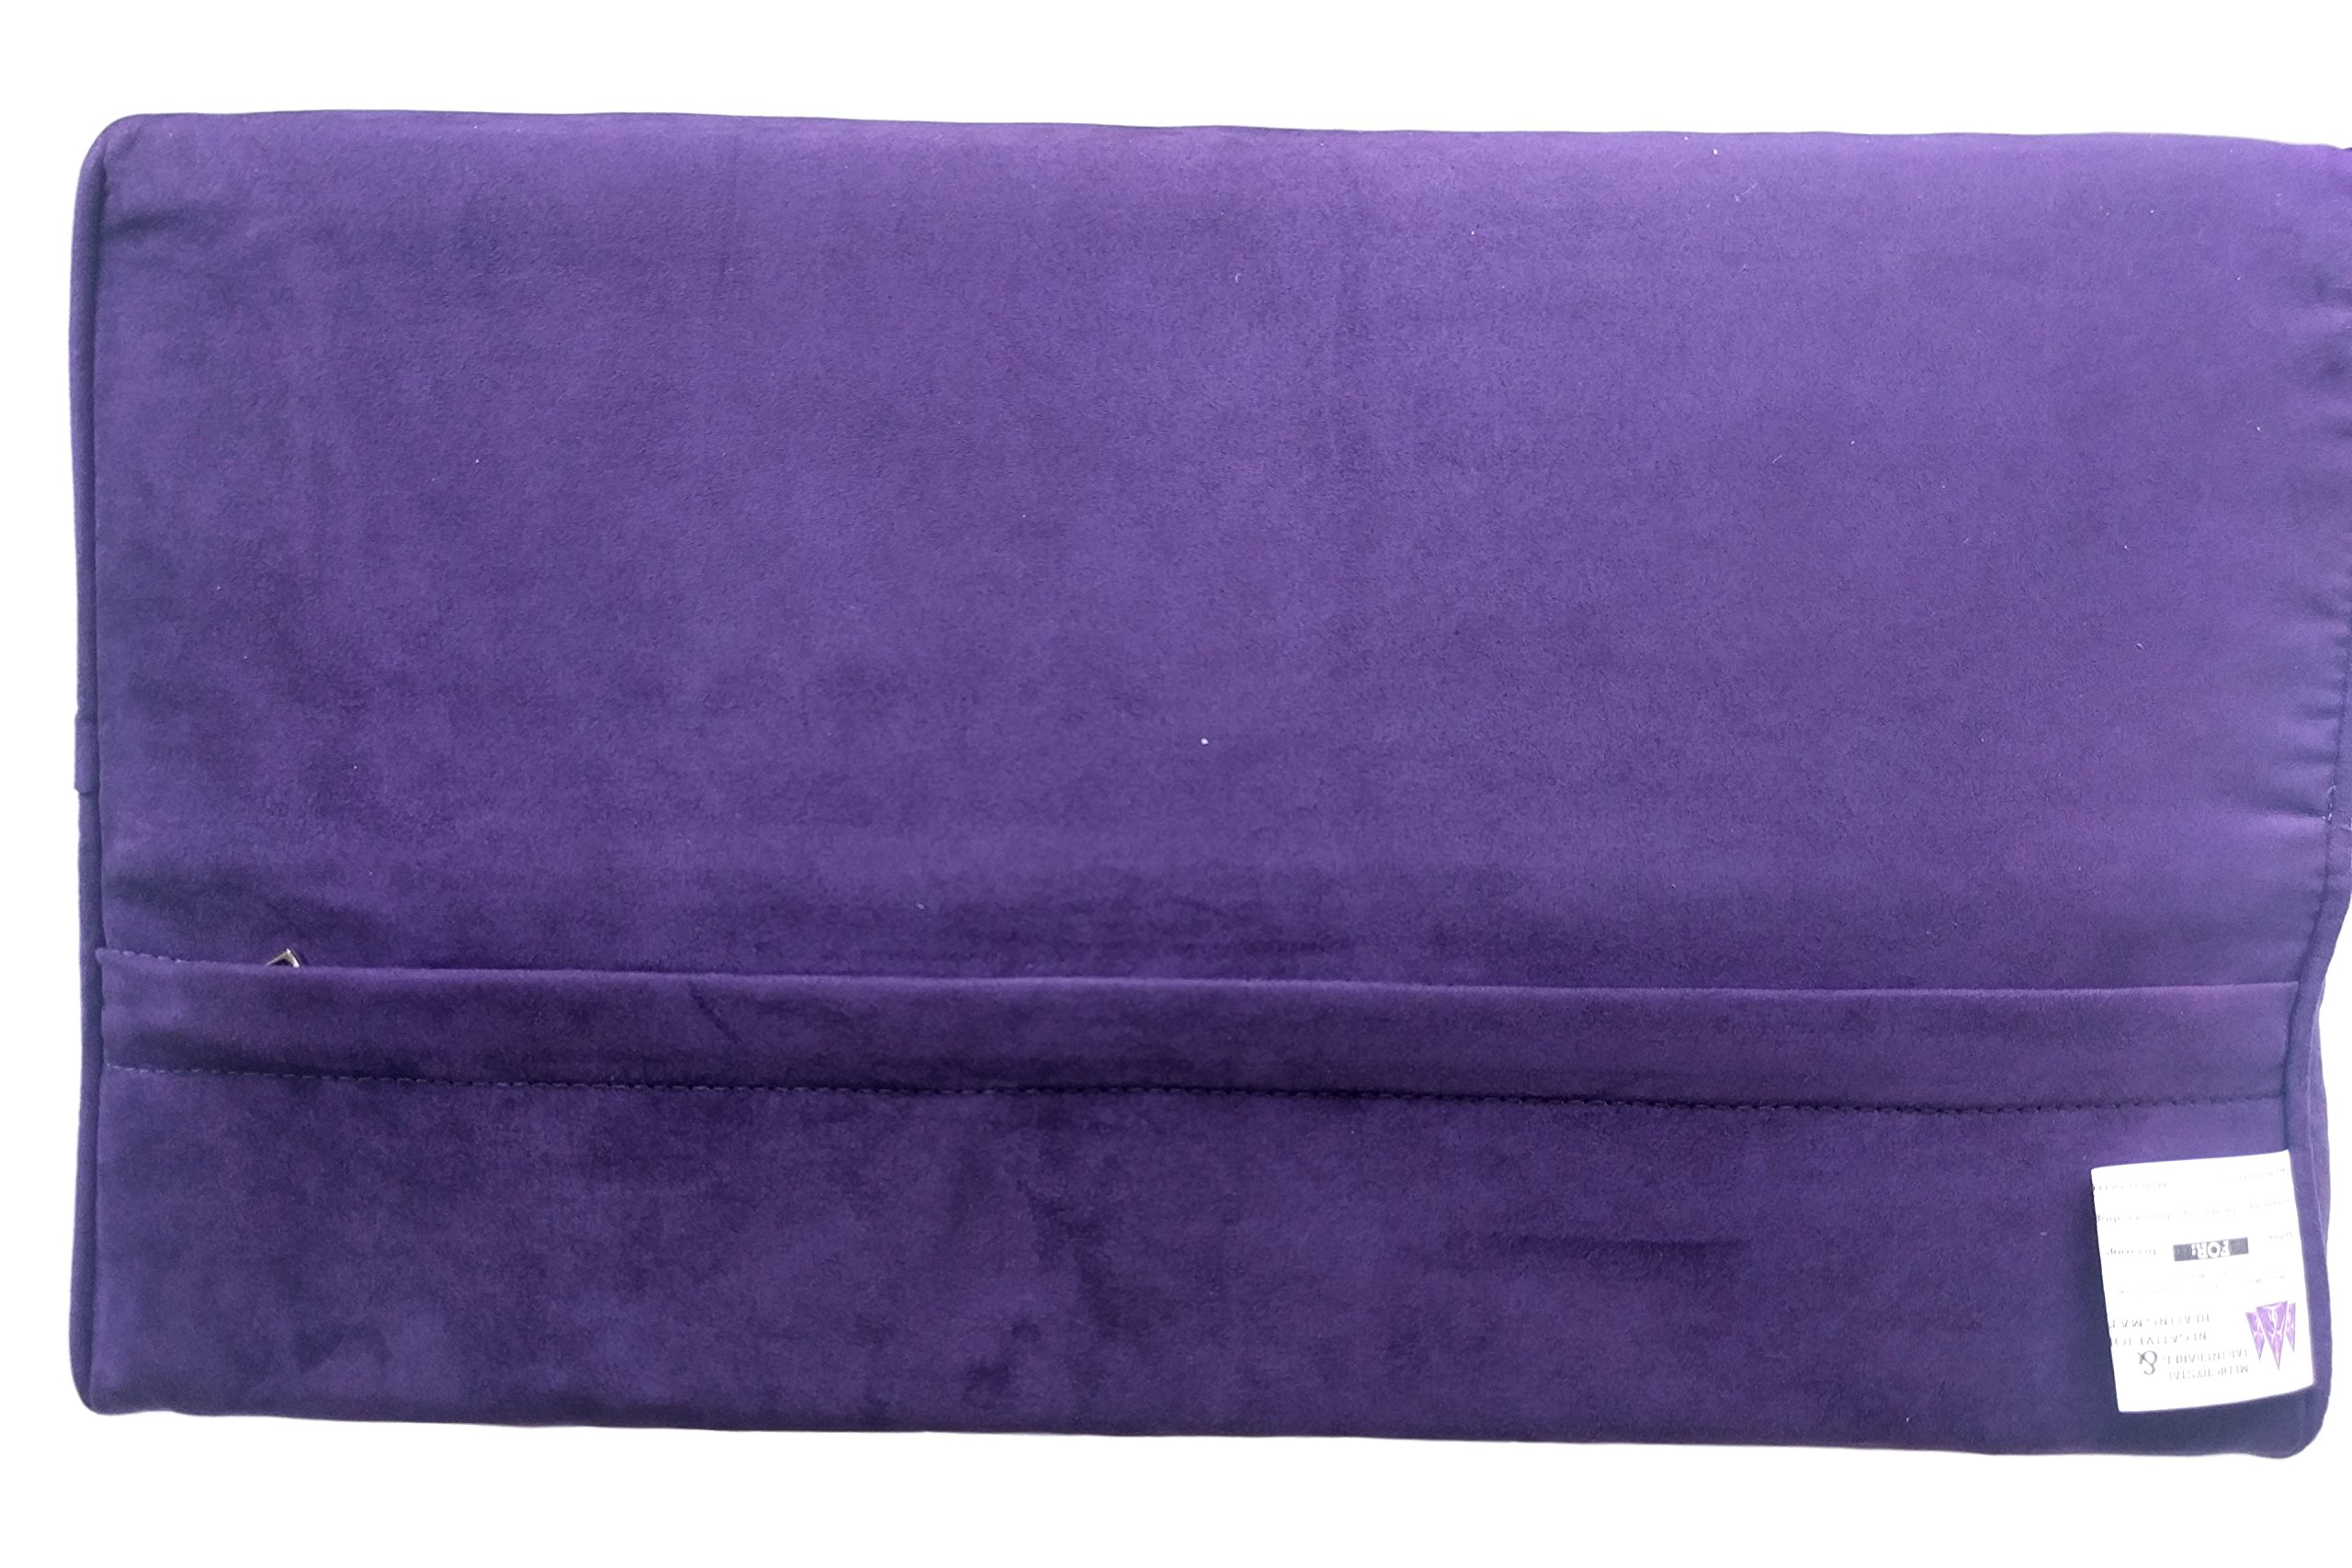 Far Infrared Amethyst Mat Pillow - Emits Negative Ions - Crystal FIR Rays - 100% Natural Amethyst Gemstones - Non Electric - For Headache and Stress Relief - To Sleep Better - GENTLE support - Purple by MediCrystal (Image #8)